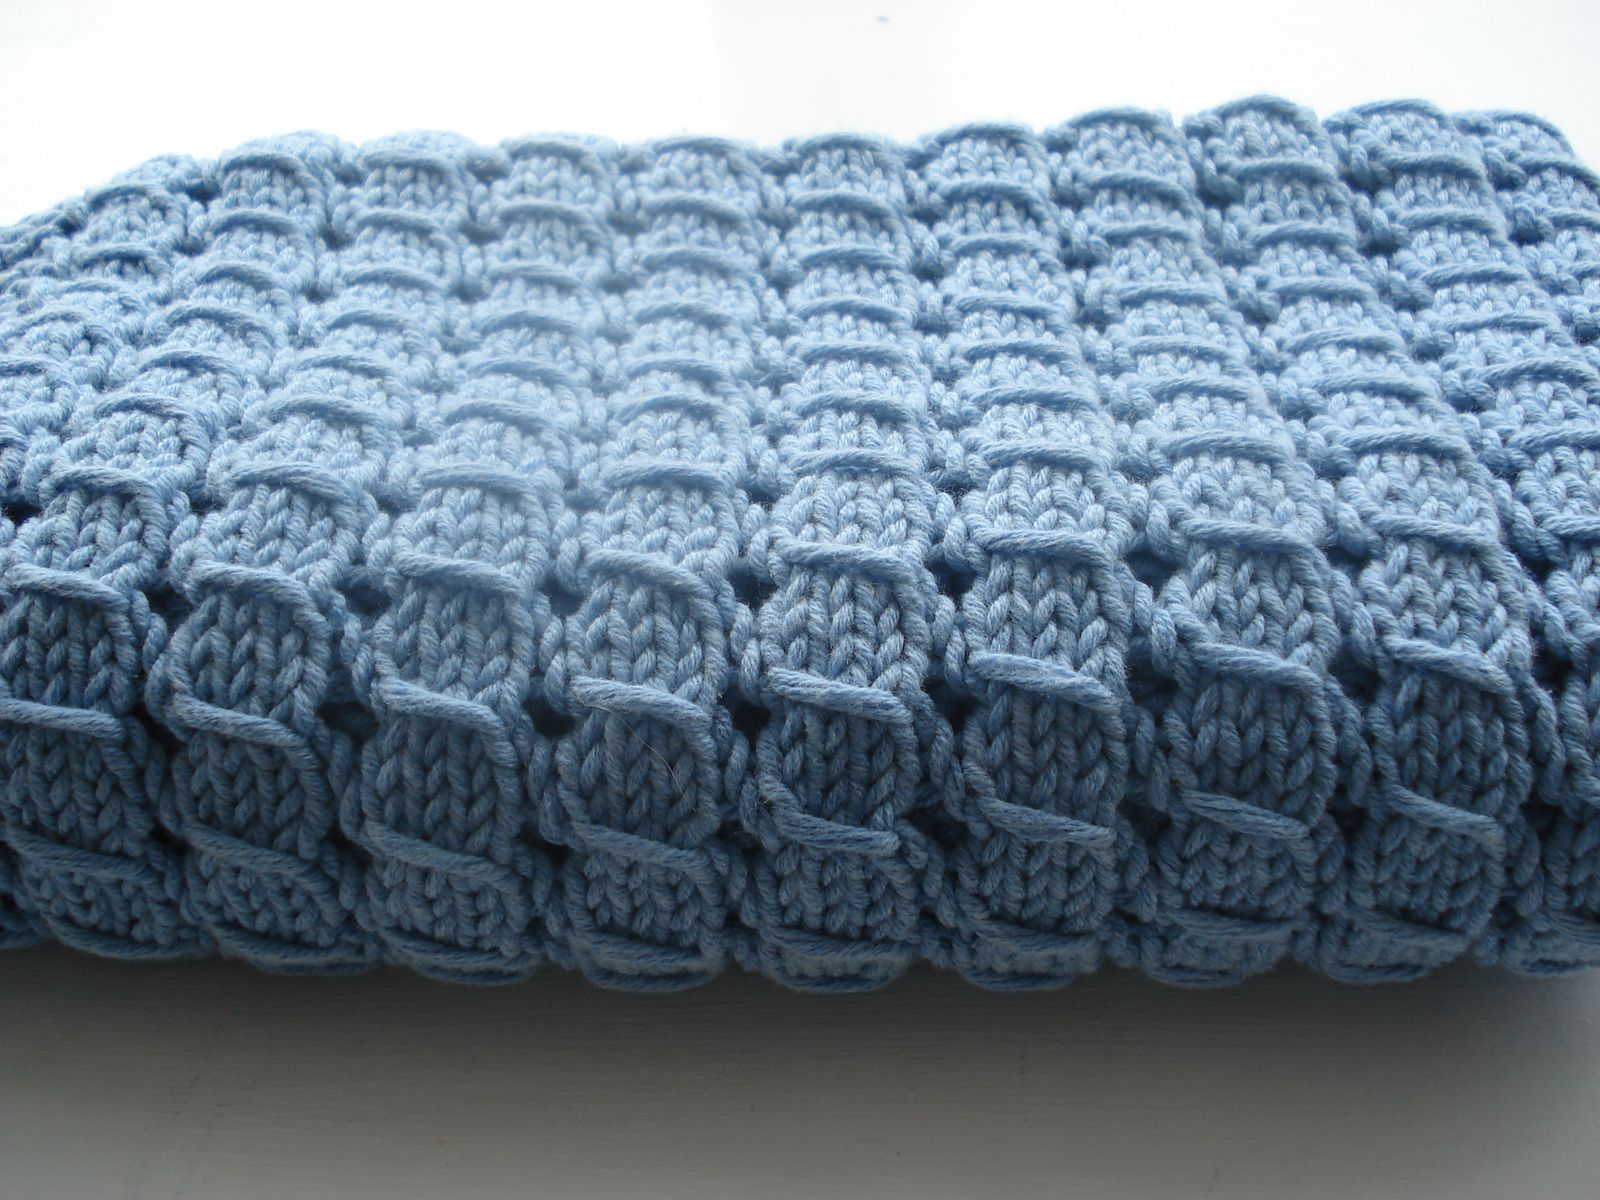 Ravelry waffle blanket pattern by alexis layton knitting for ravelry waffle blanket pattern by alexis layton free aran knitting bankloansurffo Choice Image